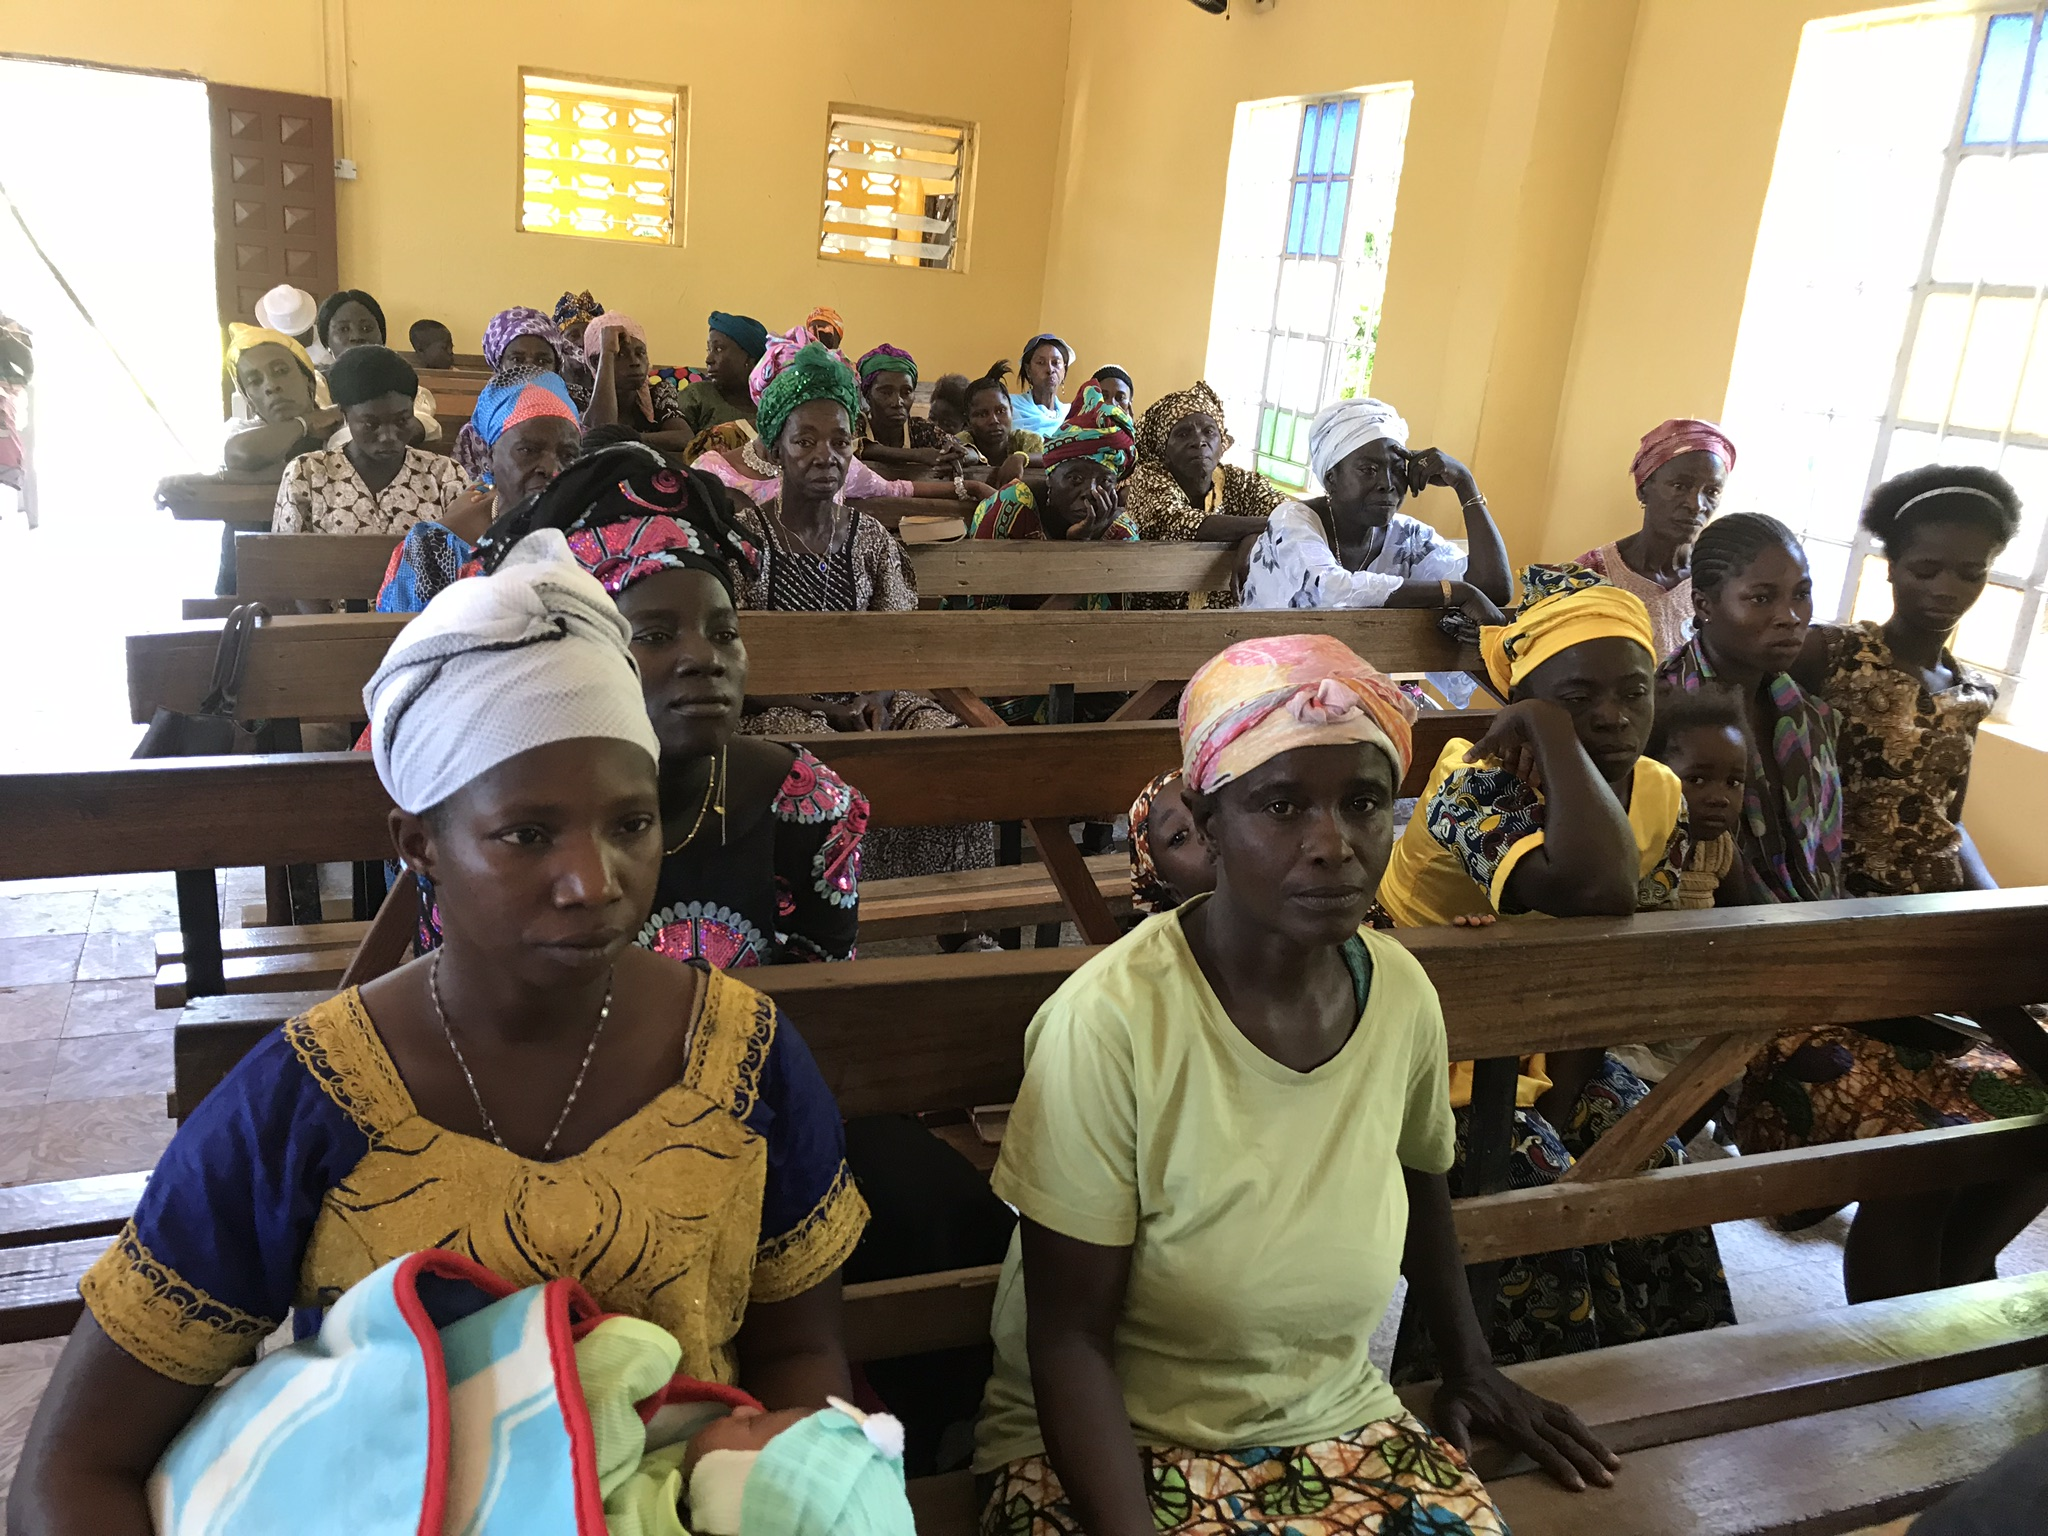 The congregation started thin but filled up as time went by.  In Kono, they speak both Kono and Krio.  And some speak English.  I communicated some with Tamba's family in Krio.